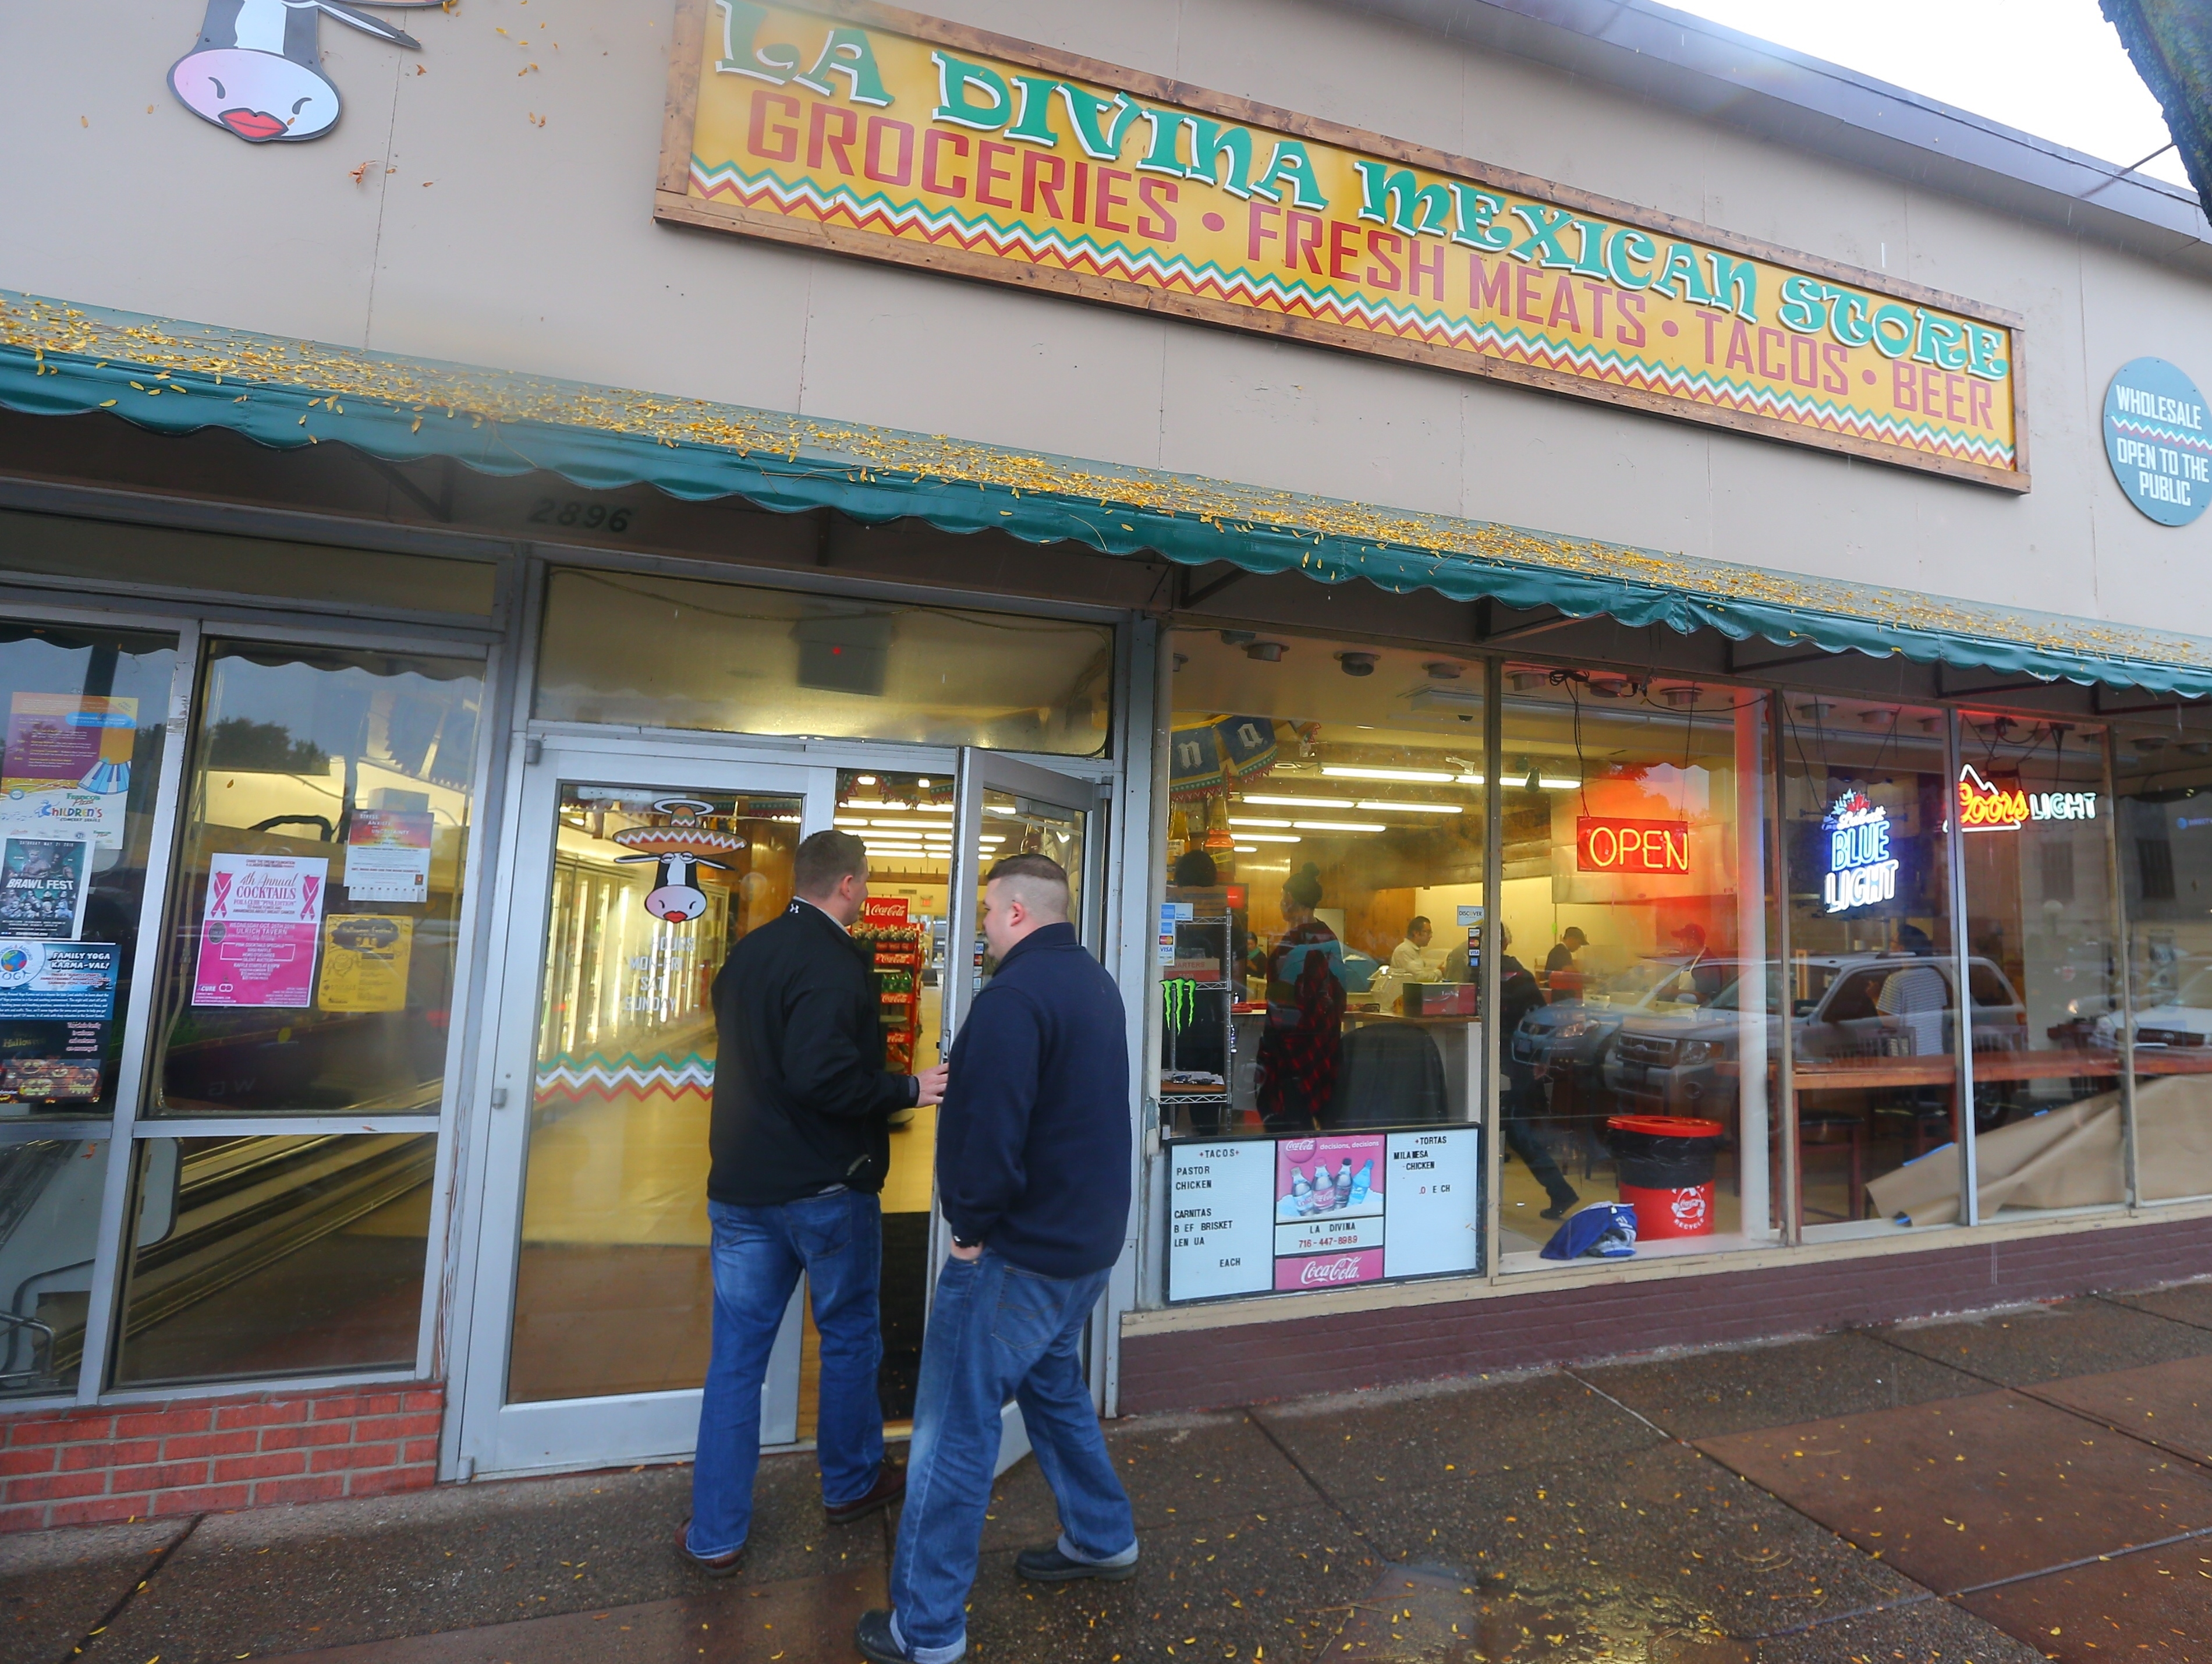 Patrons arrive after Sergio Mucino, owner, reopened La Divina Mexican Store  on Friday, Oct. 21, 2016, in Kenmore after briefly closing following a raid by federal agents, where he was arrested along with several employees earlier this week.  (John Hickey/Buffalo News)